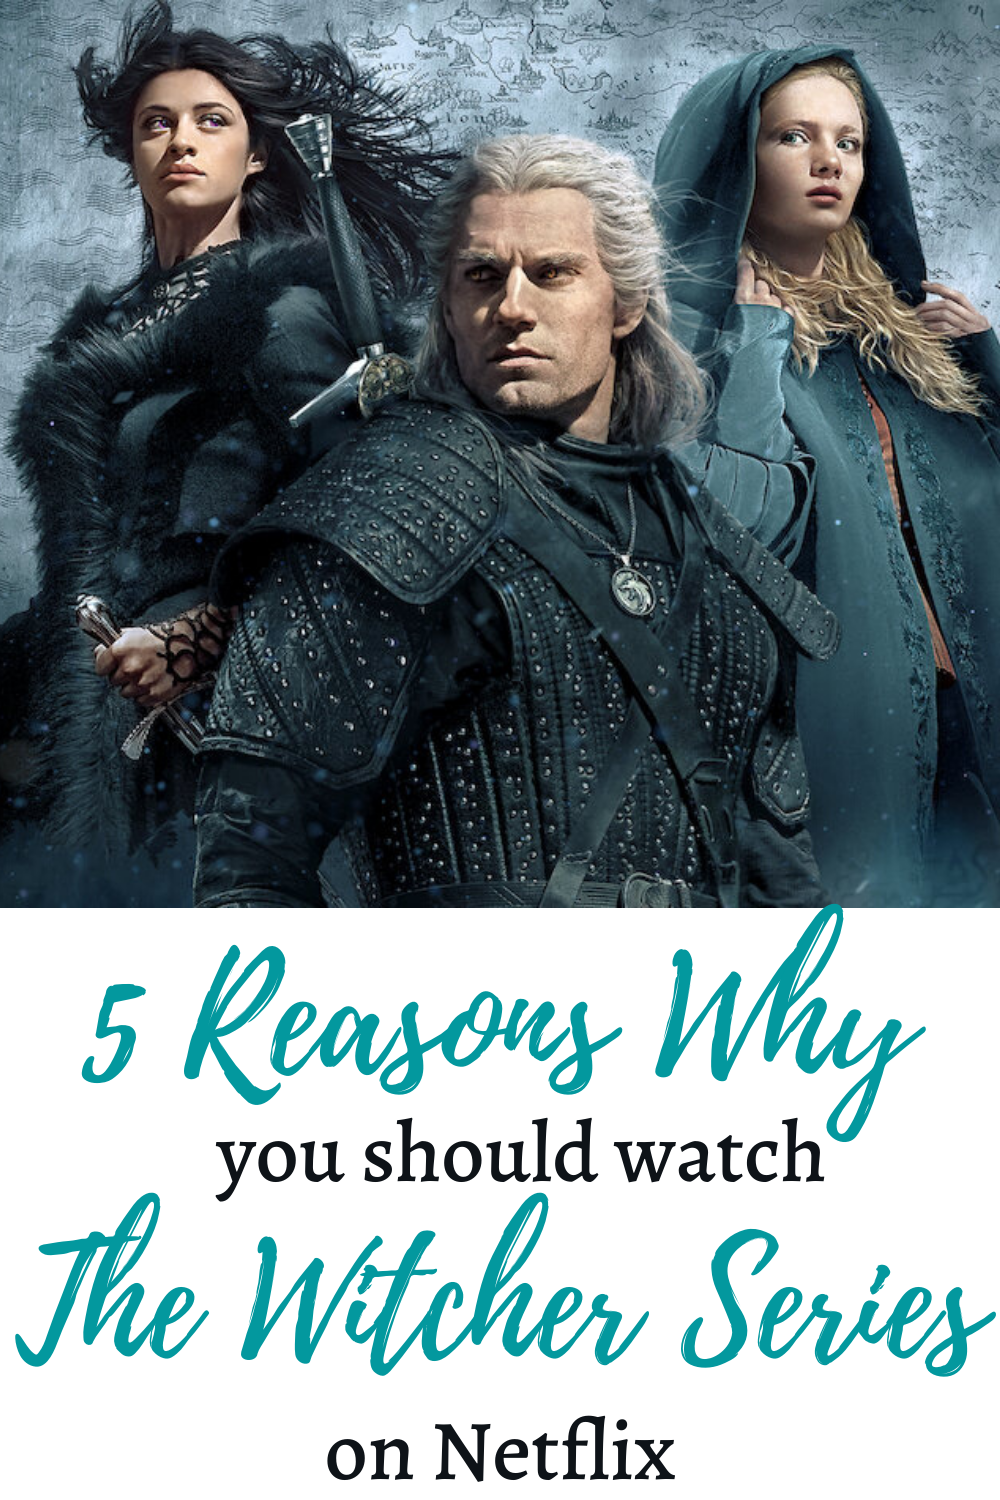 5 Reasons Why You Should Watch The Witcher Series On Netflix Netflix Netflix Series Netflix Original Series